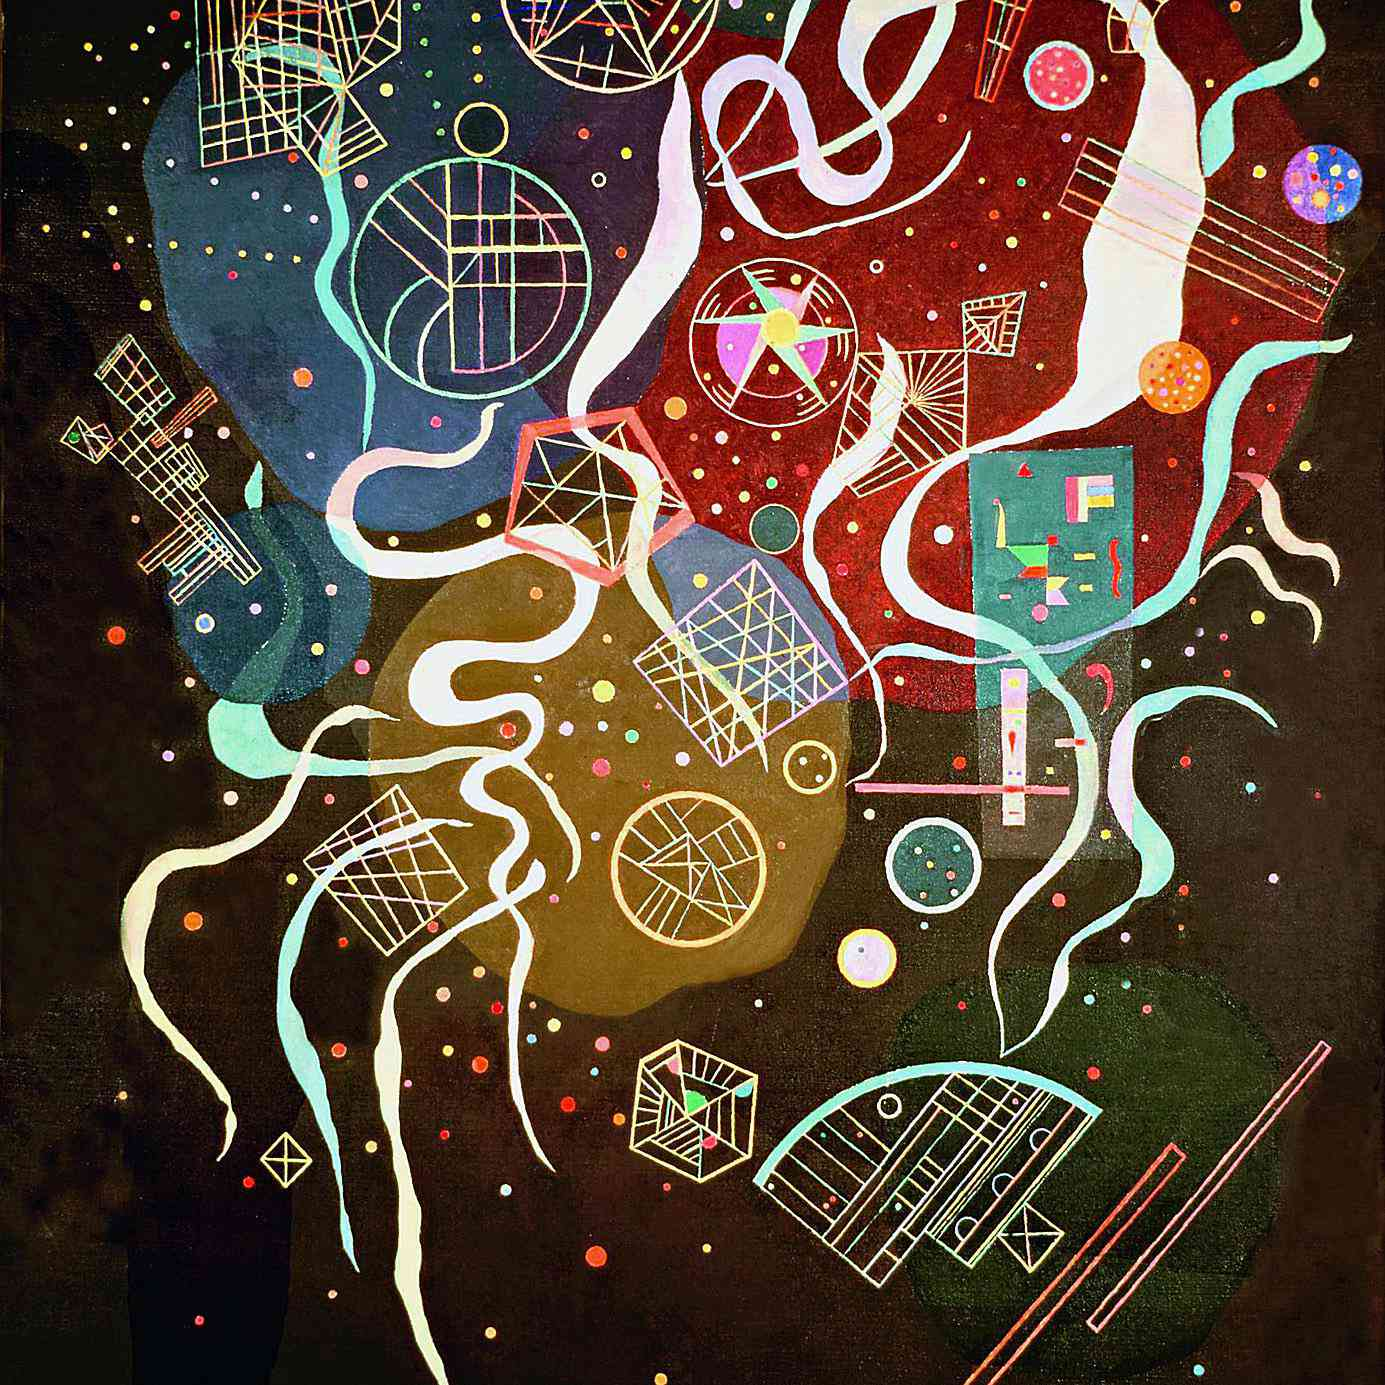 Wassily Kandinsky (Russian, 1866-1944) Wassily Kandinsky (Russian, 1866-1944). Movement I (Mouvement I), 1935. Mixed media on canvas. 45 11/16 x 35 in. (116 x 89 cm). Bequest of Nina Kandinsky, 1981. The State Tretyakov Gallery, Moscow.